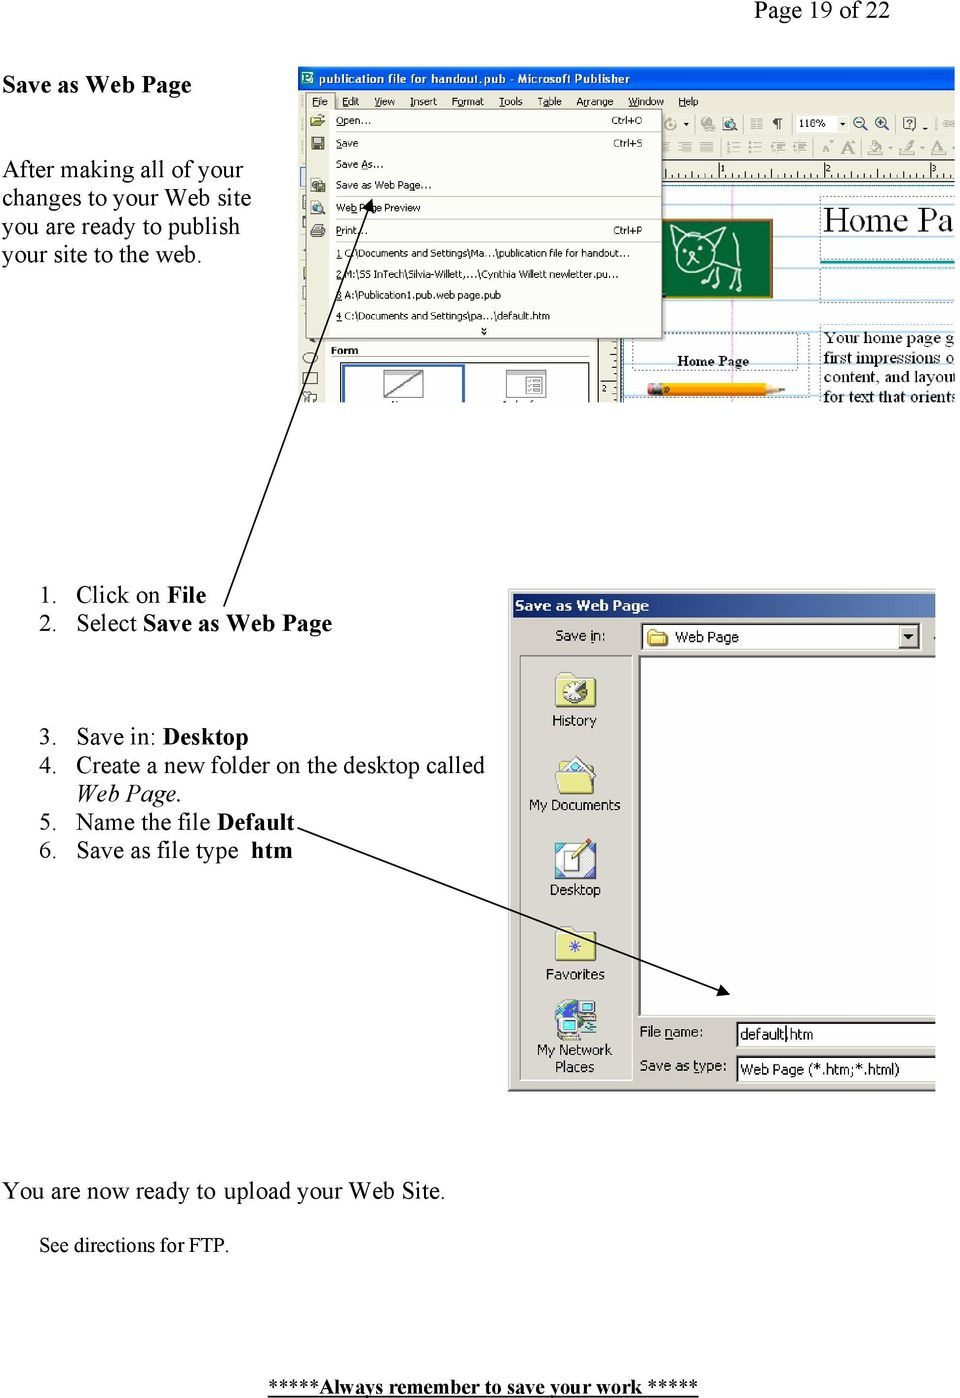 Save in: Desktop 4. Create a new folder on the desktop called Web Page. 5.